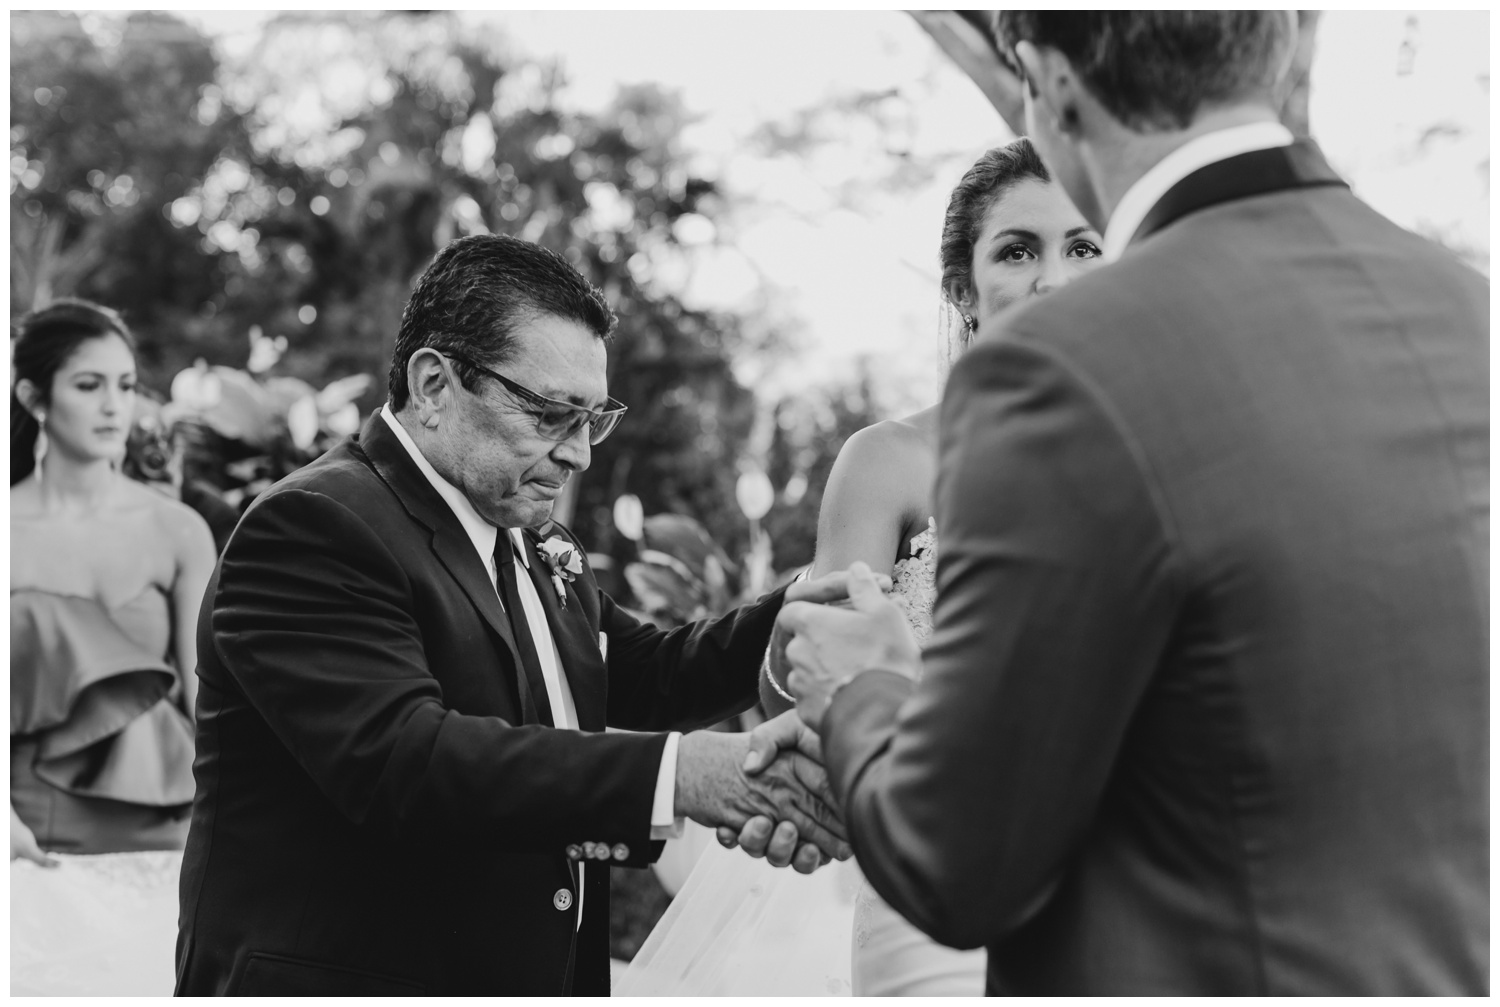 adriana_rivera_miranda_weddings_el_salvador_74.jpg